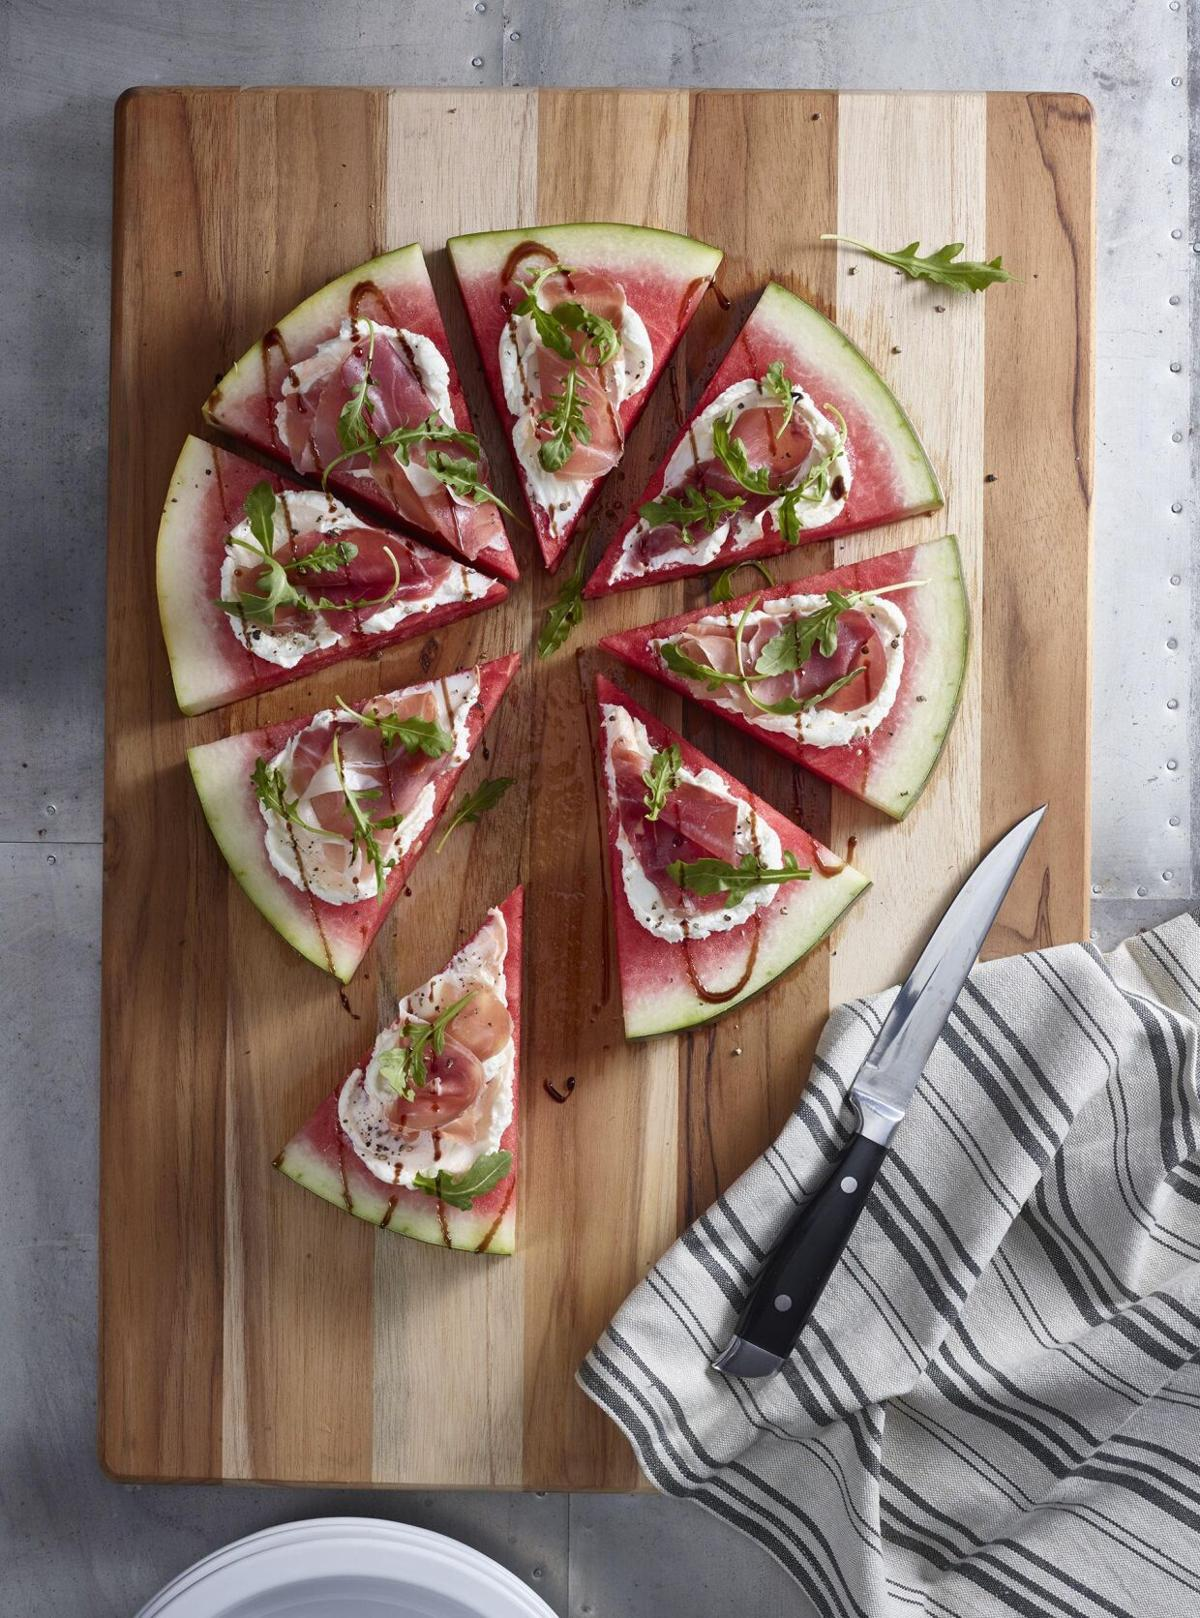 Stephen Fries: Open your kitchen to the wonders of watermelon